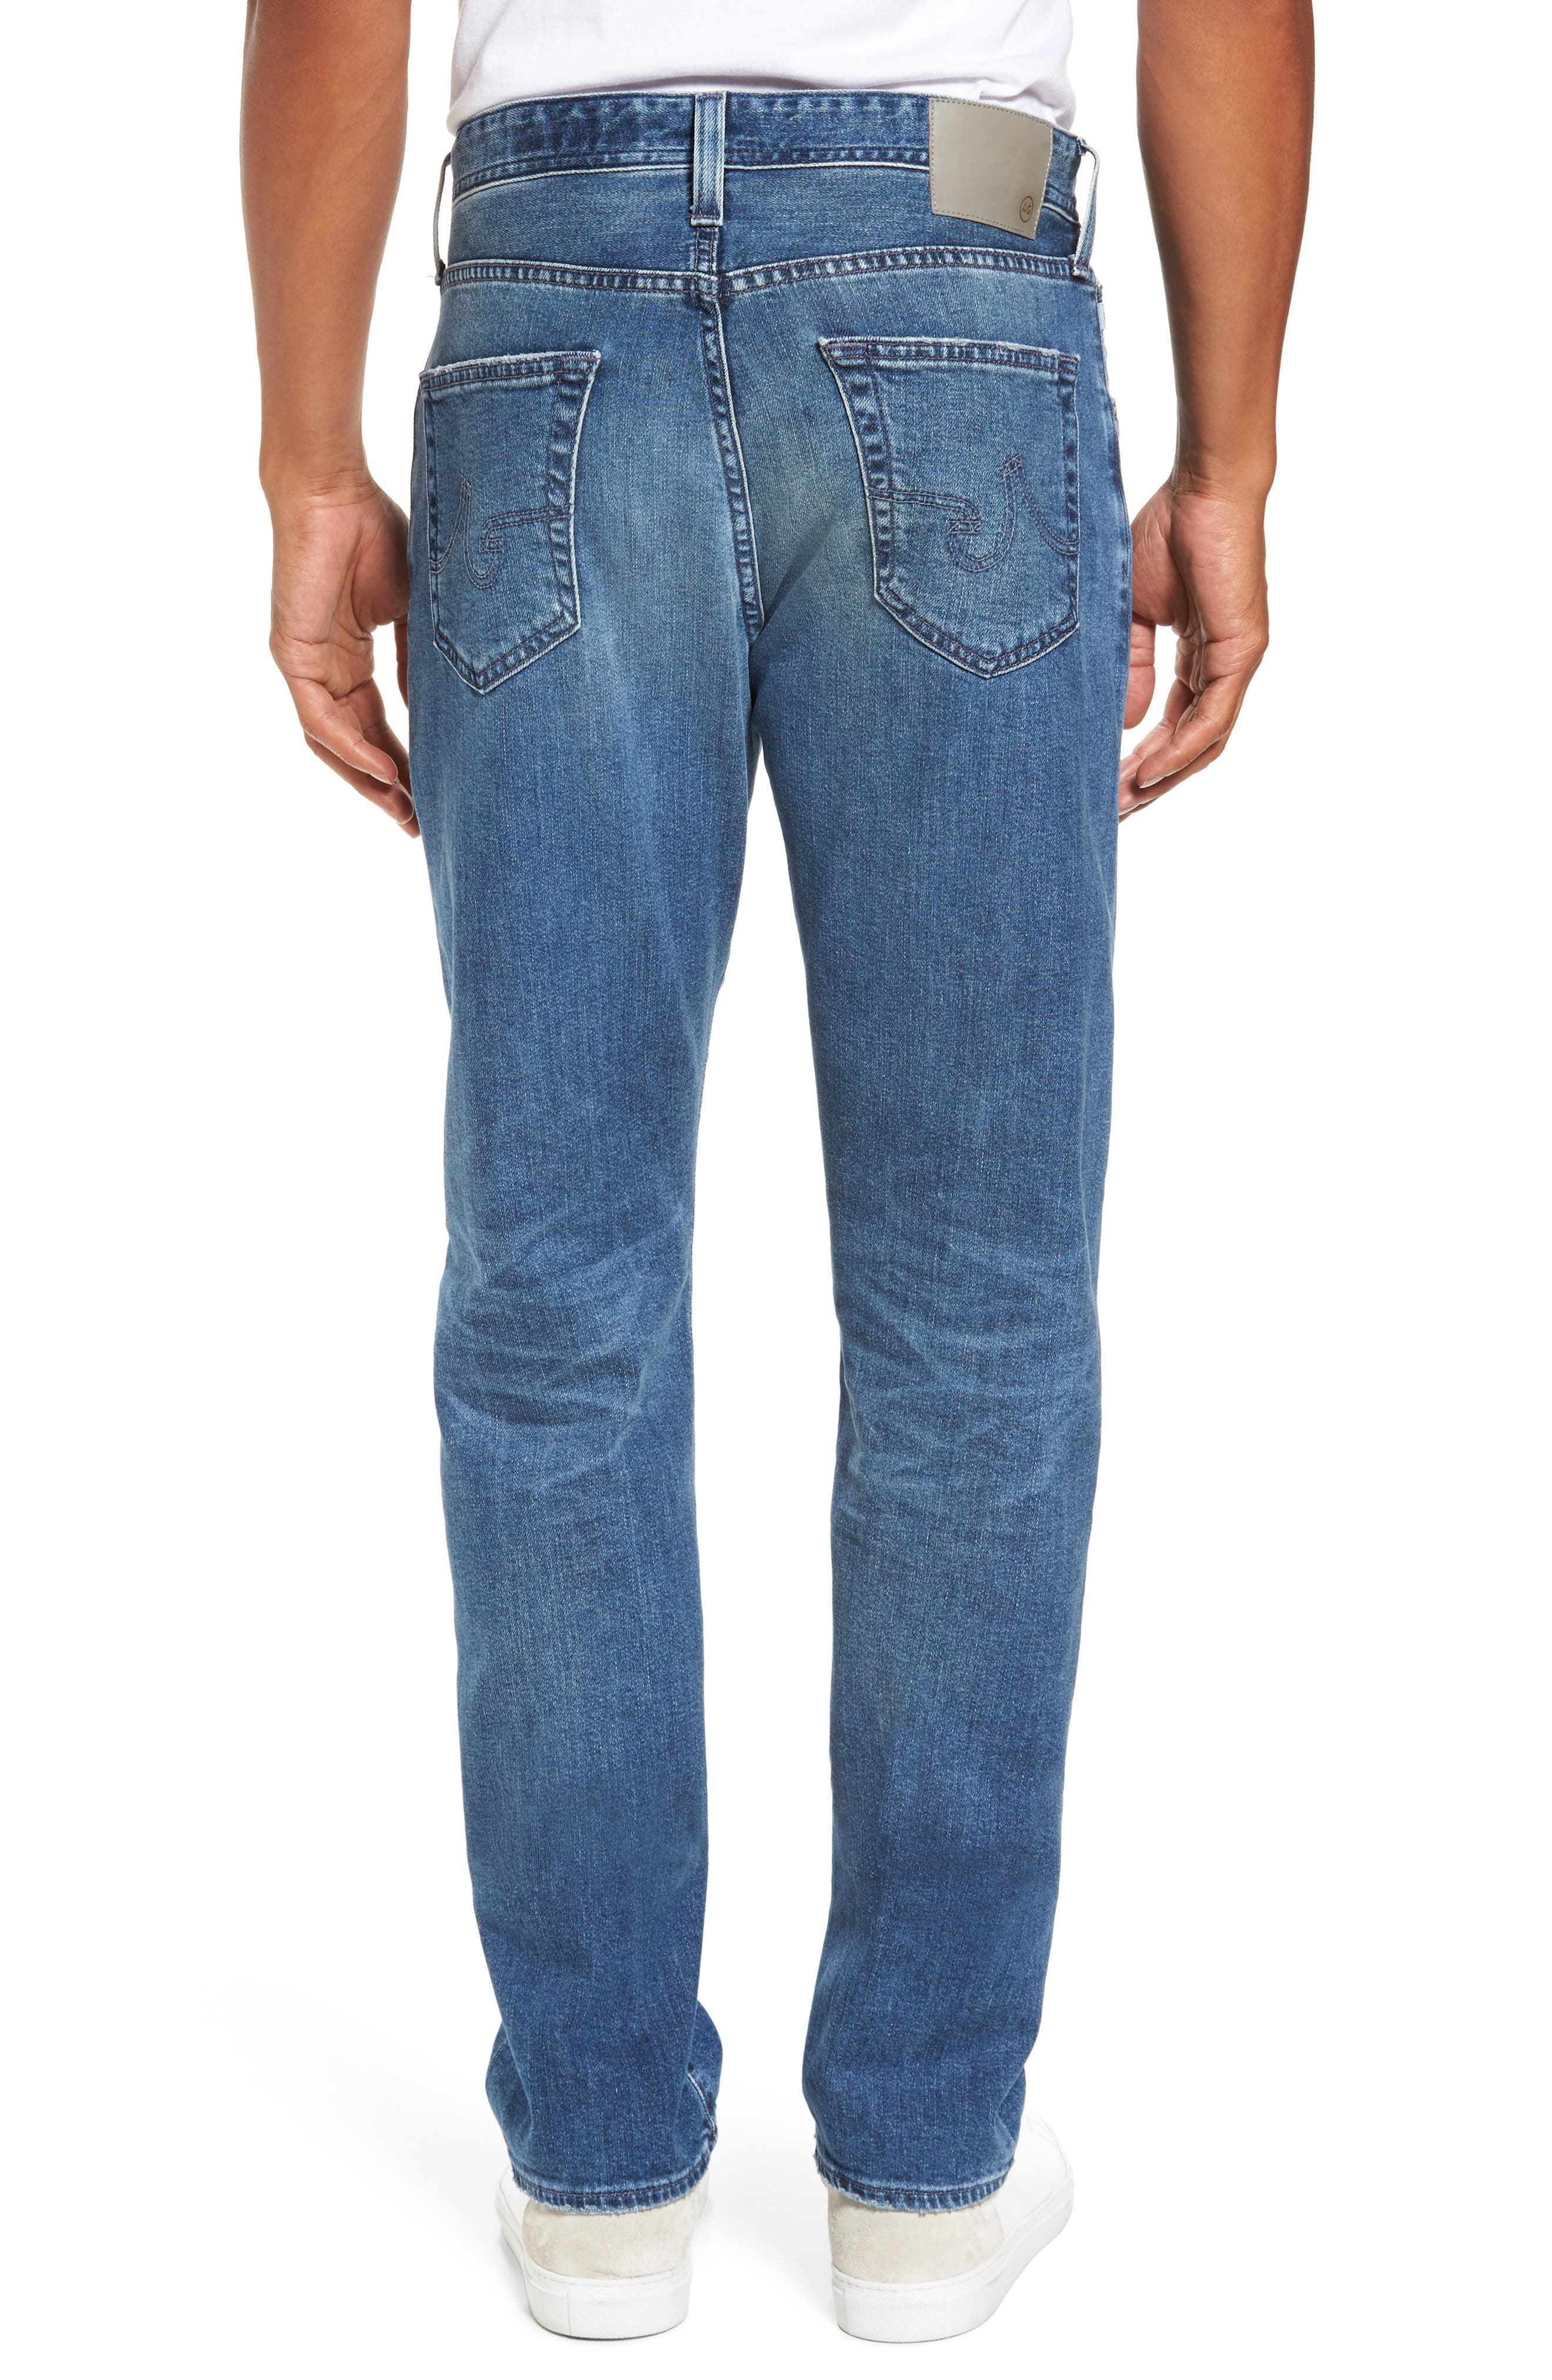 Ives Straight Fit Jeans,                             Alternate thumbnail 2, color,                             468